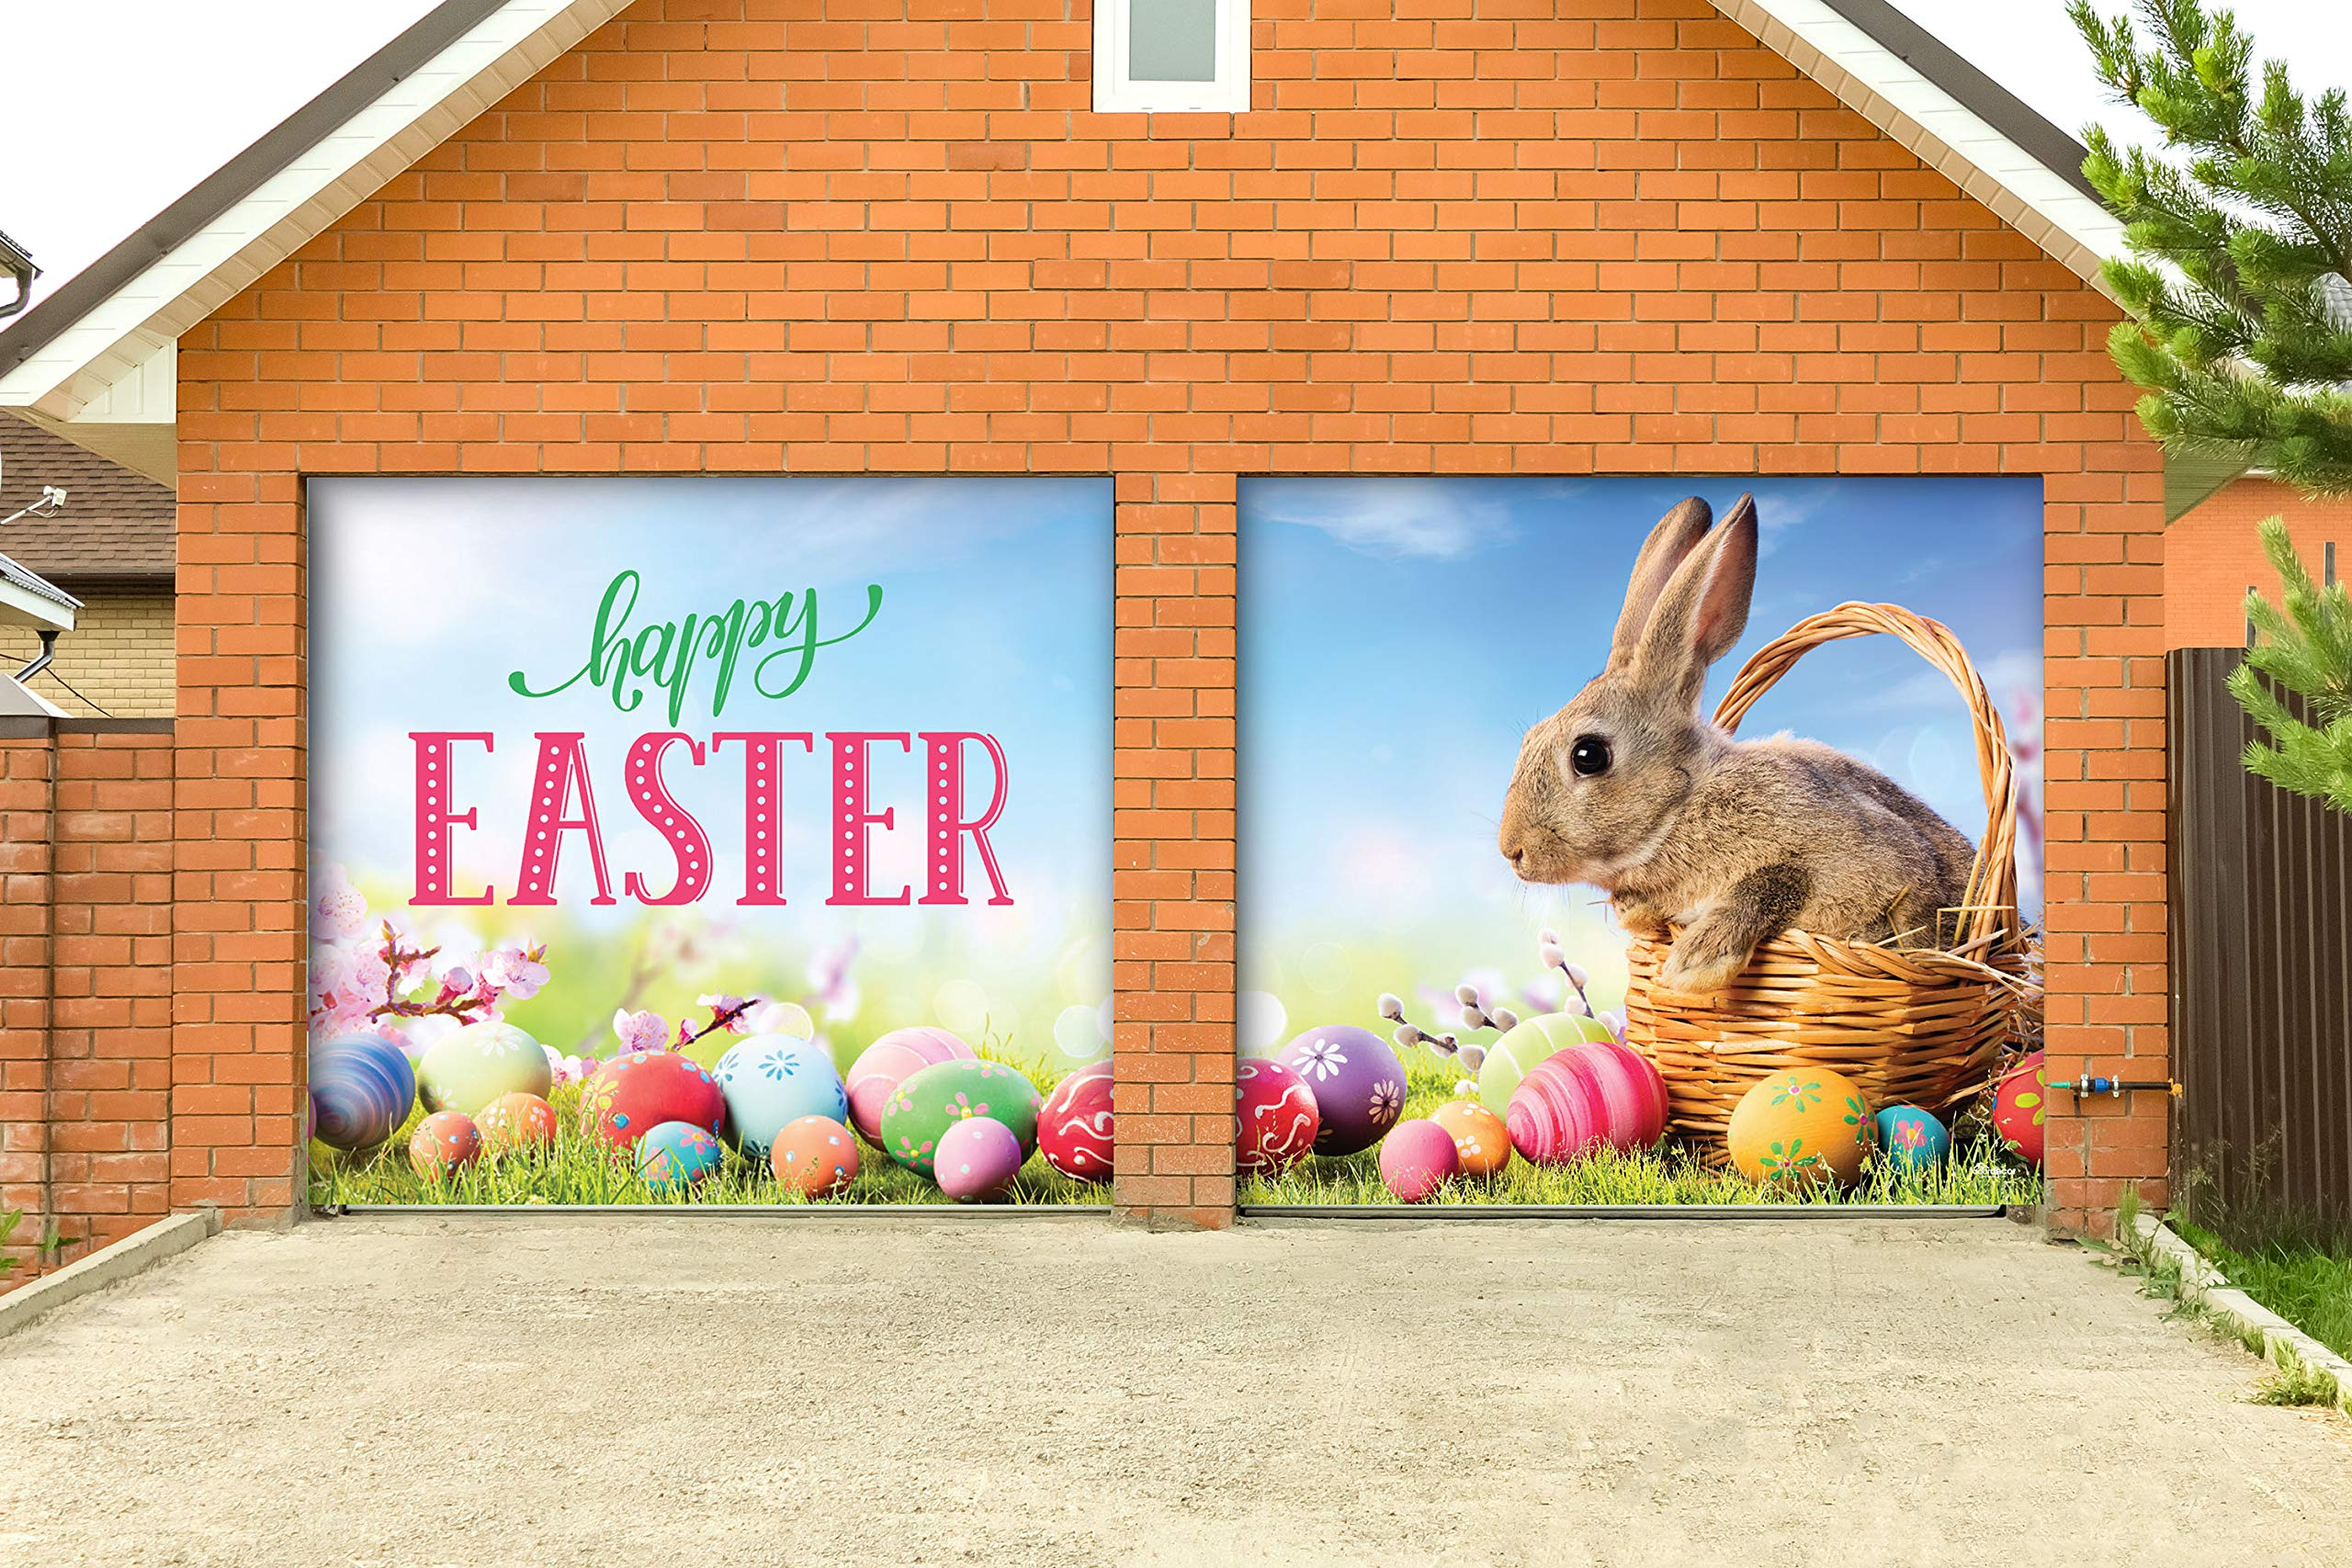 Victory Corps Happy Easter Bunny Basket - Holiday Garage Door Banner Mural Sign Décor 7'x 8' Split Car Garage - The Original Holiday Garage Door Banner Decor